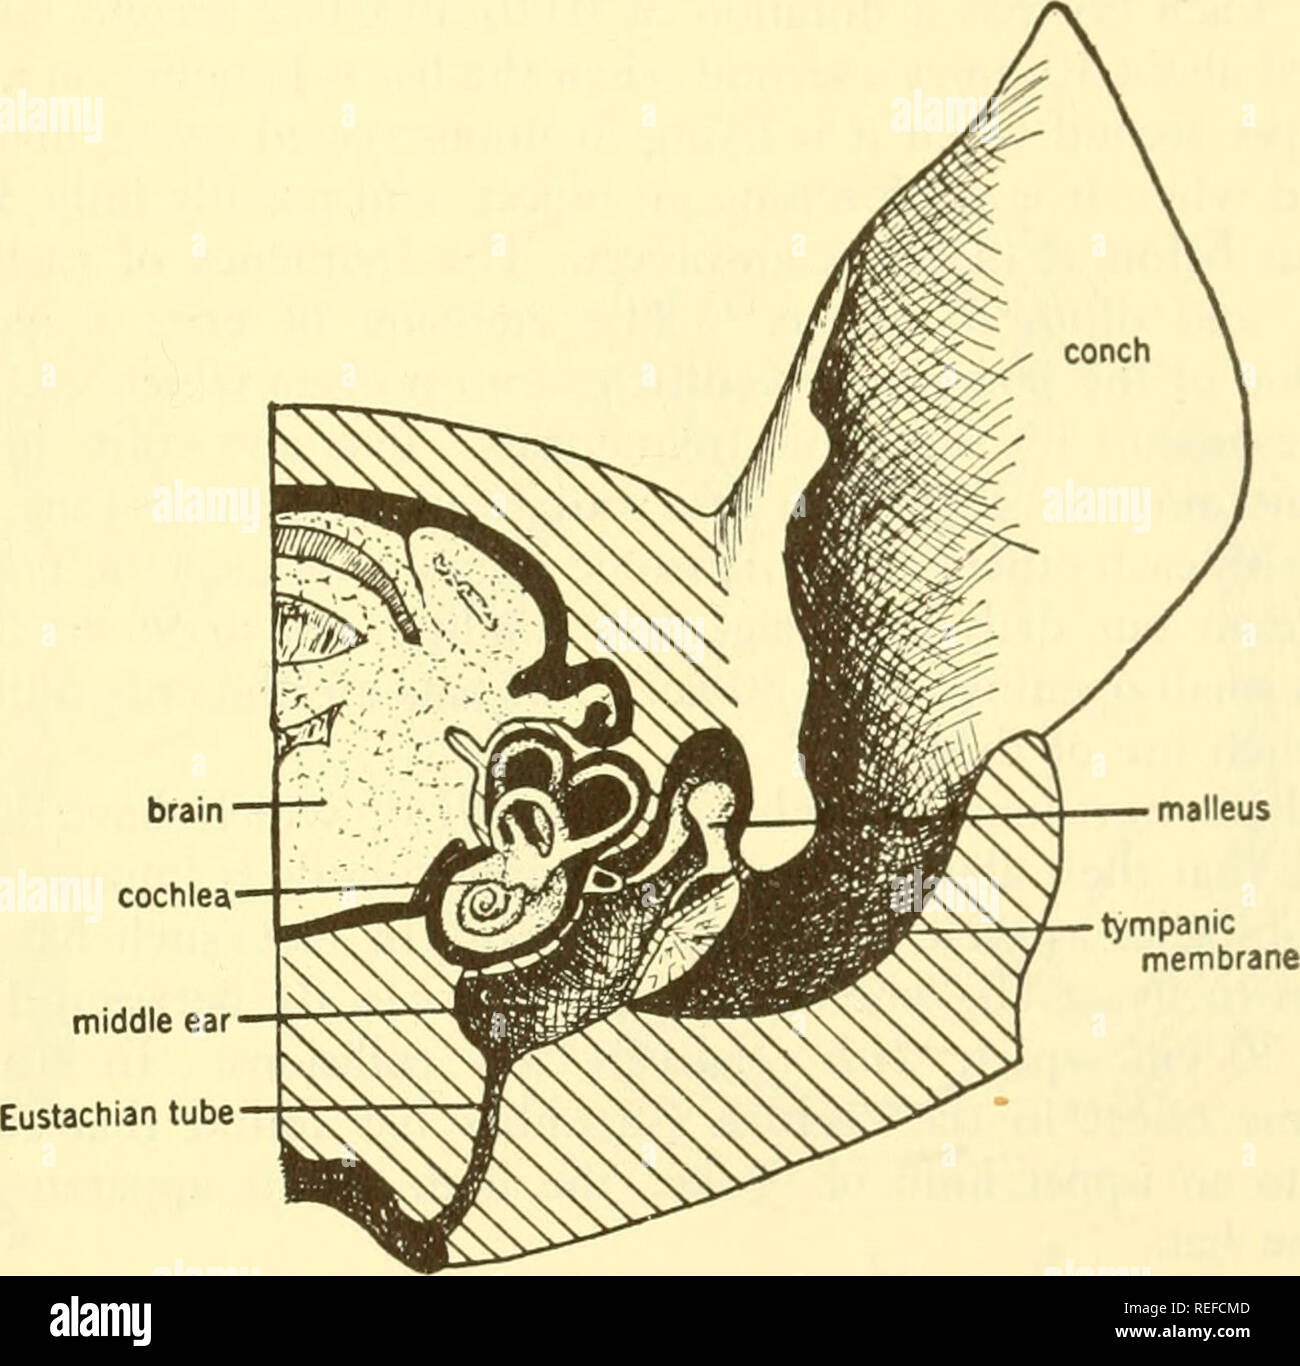 https://www alamy com/comparative-animal-physiology-physiology-comparative-physiology-comparative-phonoreceptiun-491-mammals-in-all-mammals-the-cochlea-is-highly-developed-and-in-all-mammals-that-are-not-completely-aquatic-the-middle-car-contains-three-os-sicles-similar-to-those-of-man-and-an-external-ear-is-usually-present-fig-168-the-cochlea-is-always-coiled-but-the-number-of-turns-has-no-apparent-rela-tion-to-the-size-or-intelligence-of-the-animal-the-duck-billed-platypus-has-a-quarter-turn-the-whale-has-15-turns-the-horse-2-man-about-275-cat-3-pig-and-guinea-pig-nearly-4-and-the-south-a-image232679229 html